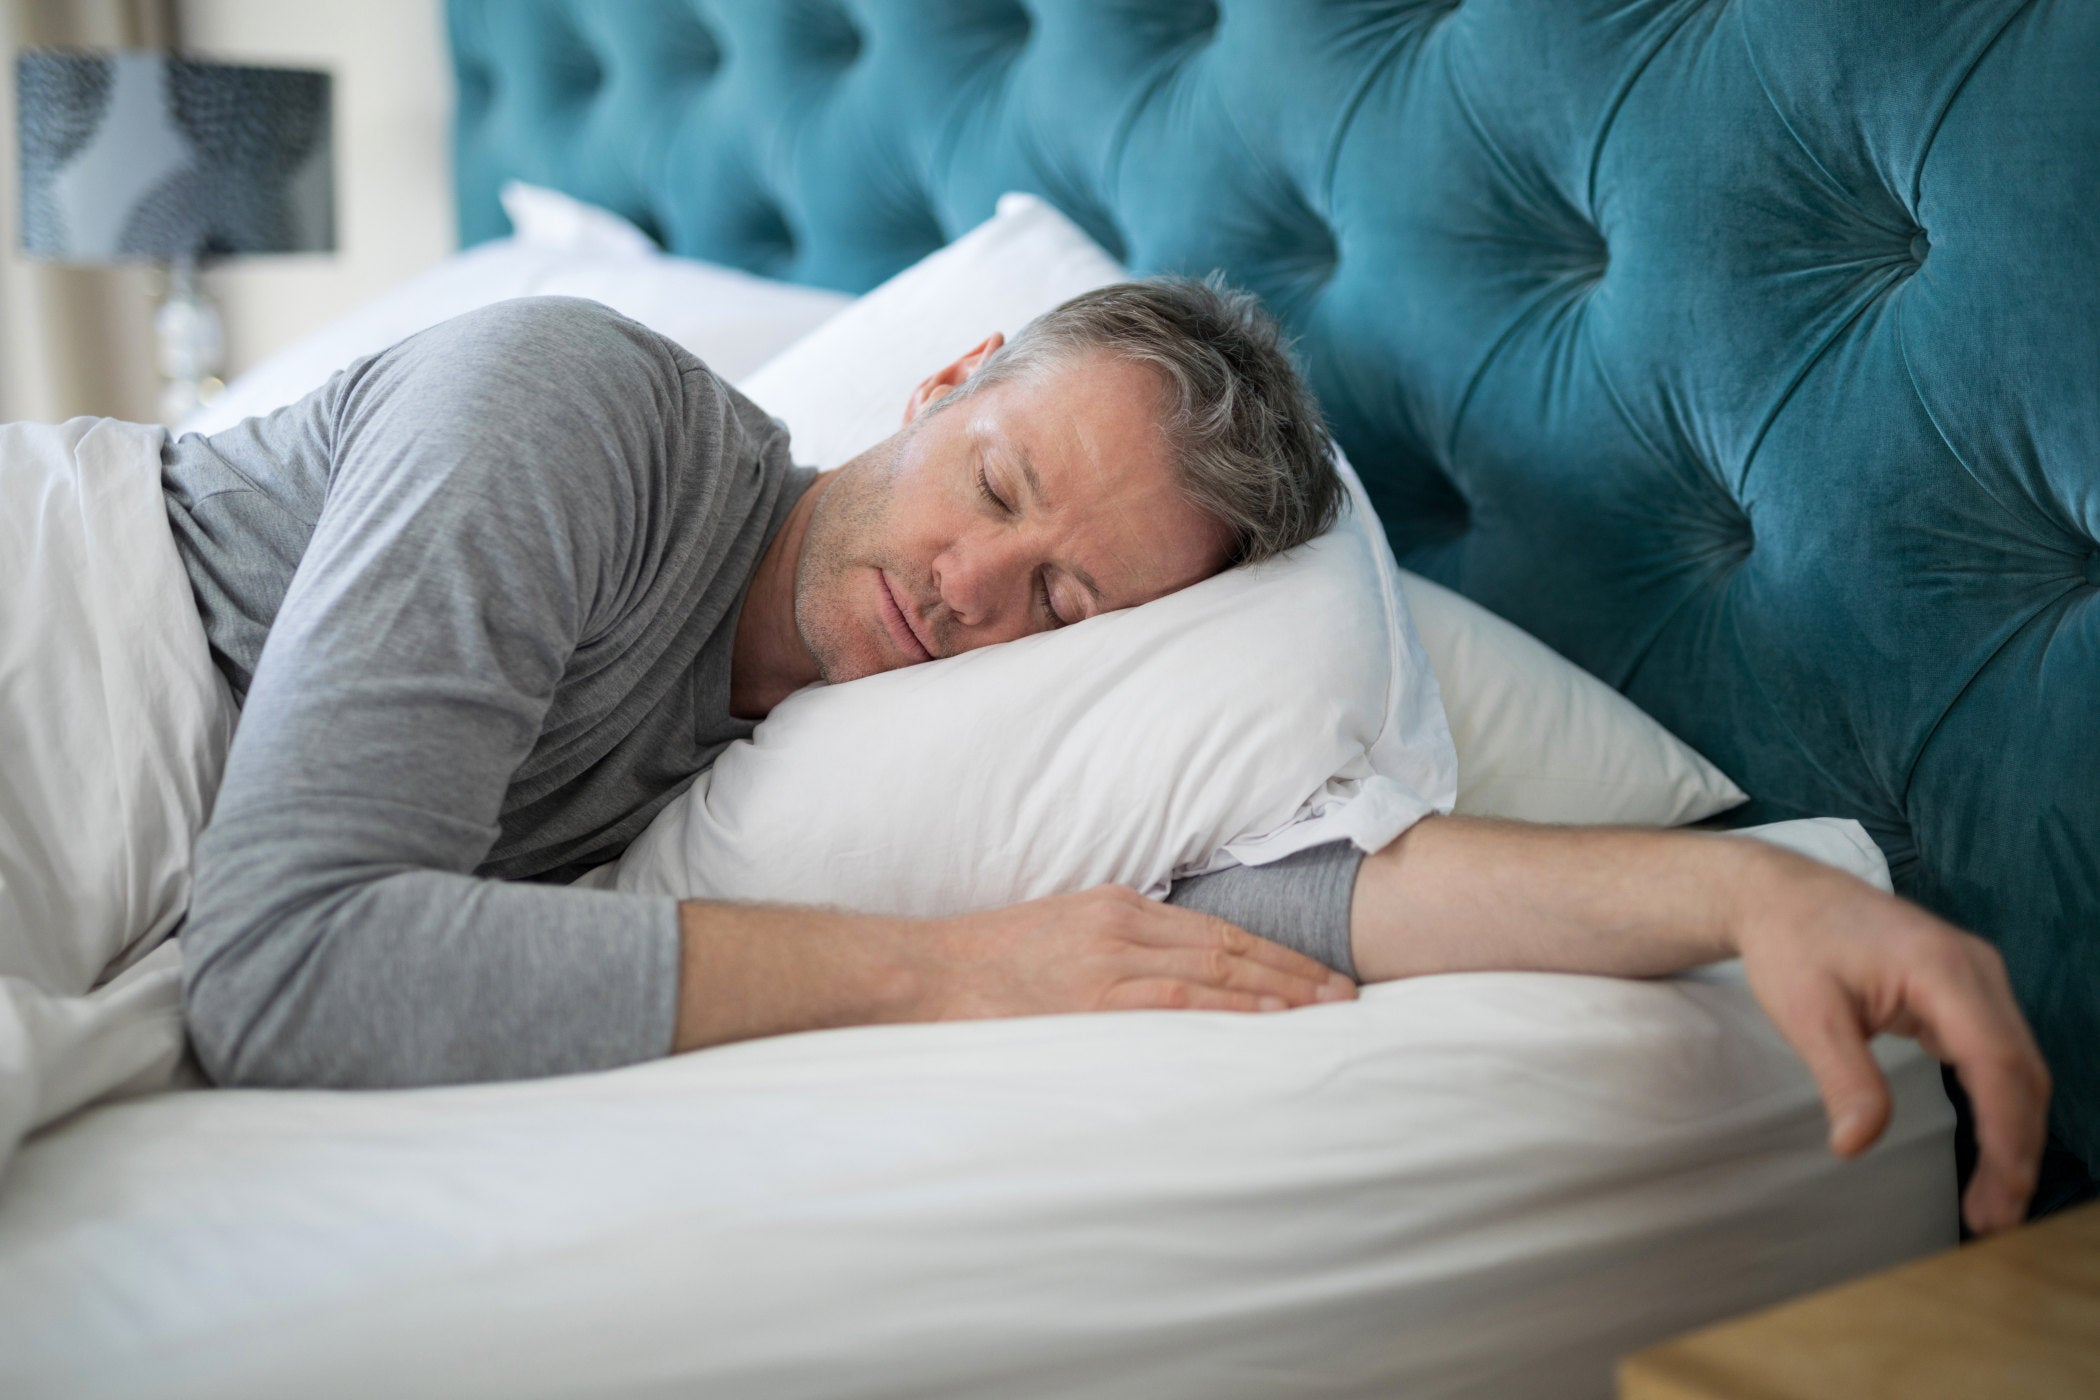 Man sleeping peacefully on a king sized bed with a blue tufted headboard